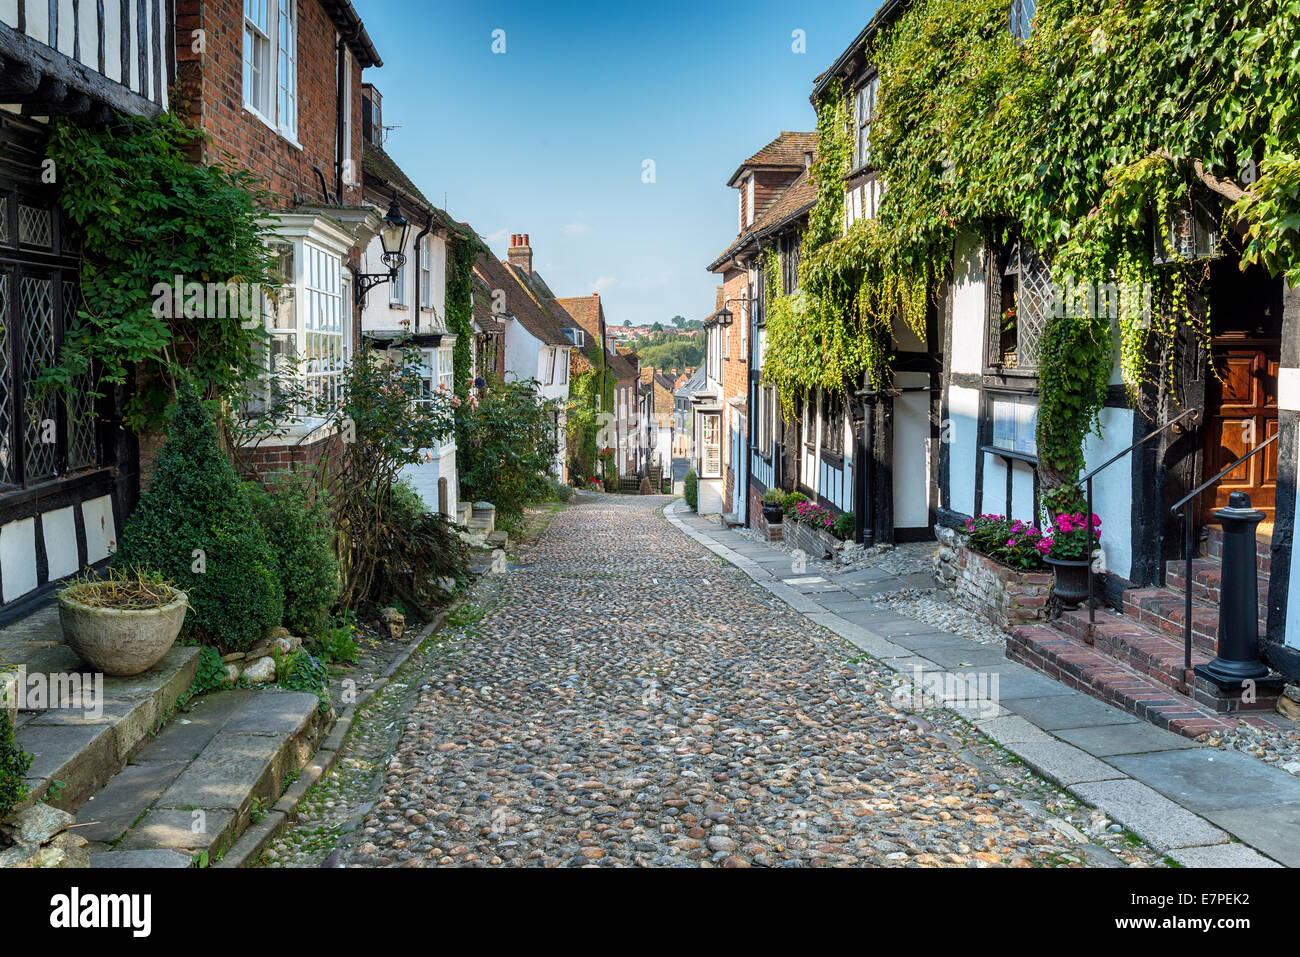 Picturesque cobblestone street in Rye, East Sussex - Stock Image